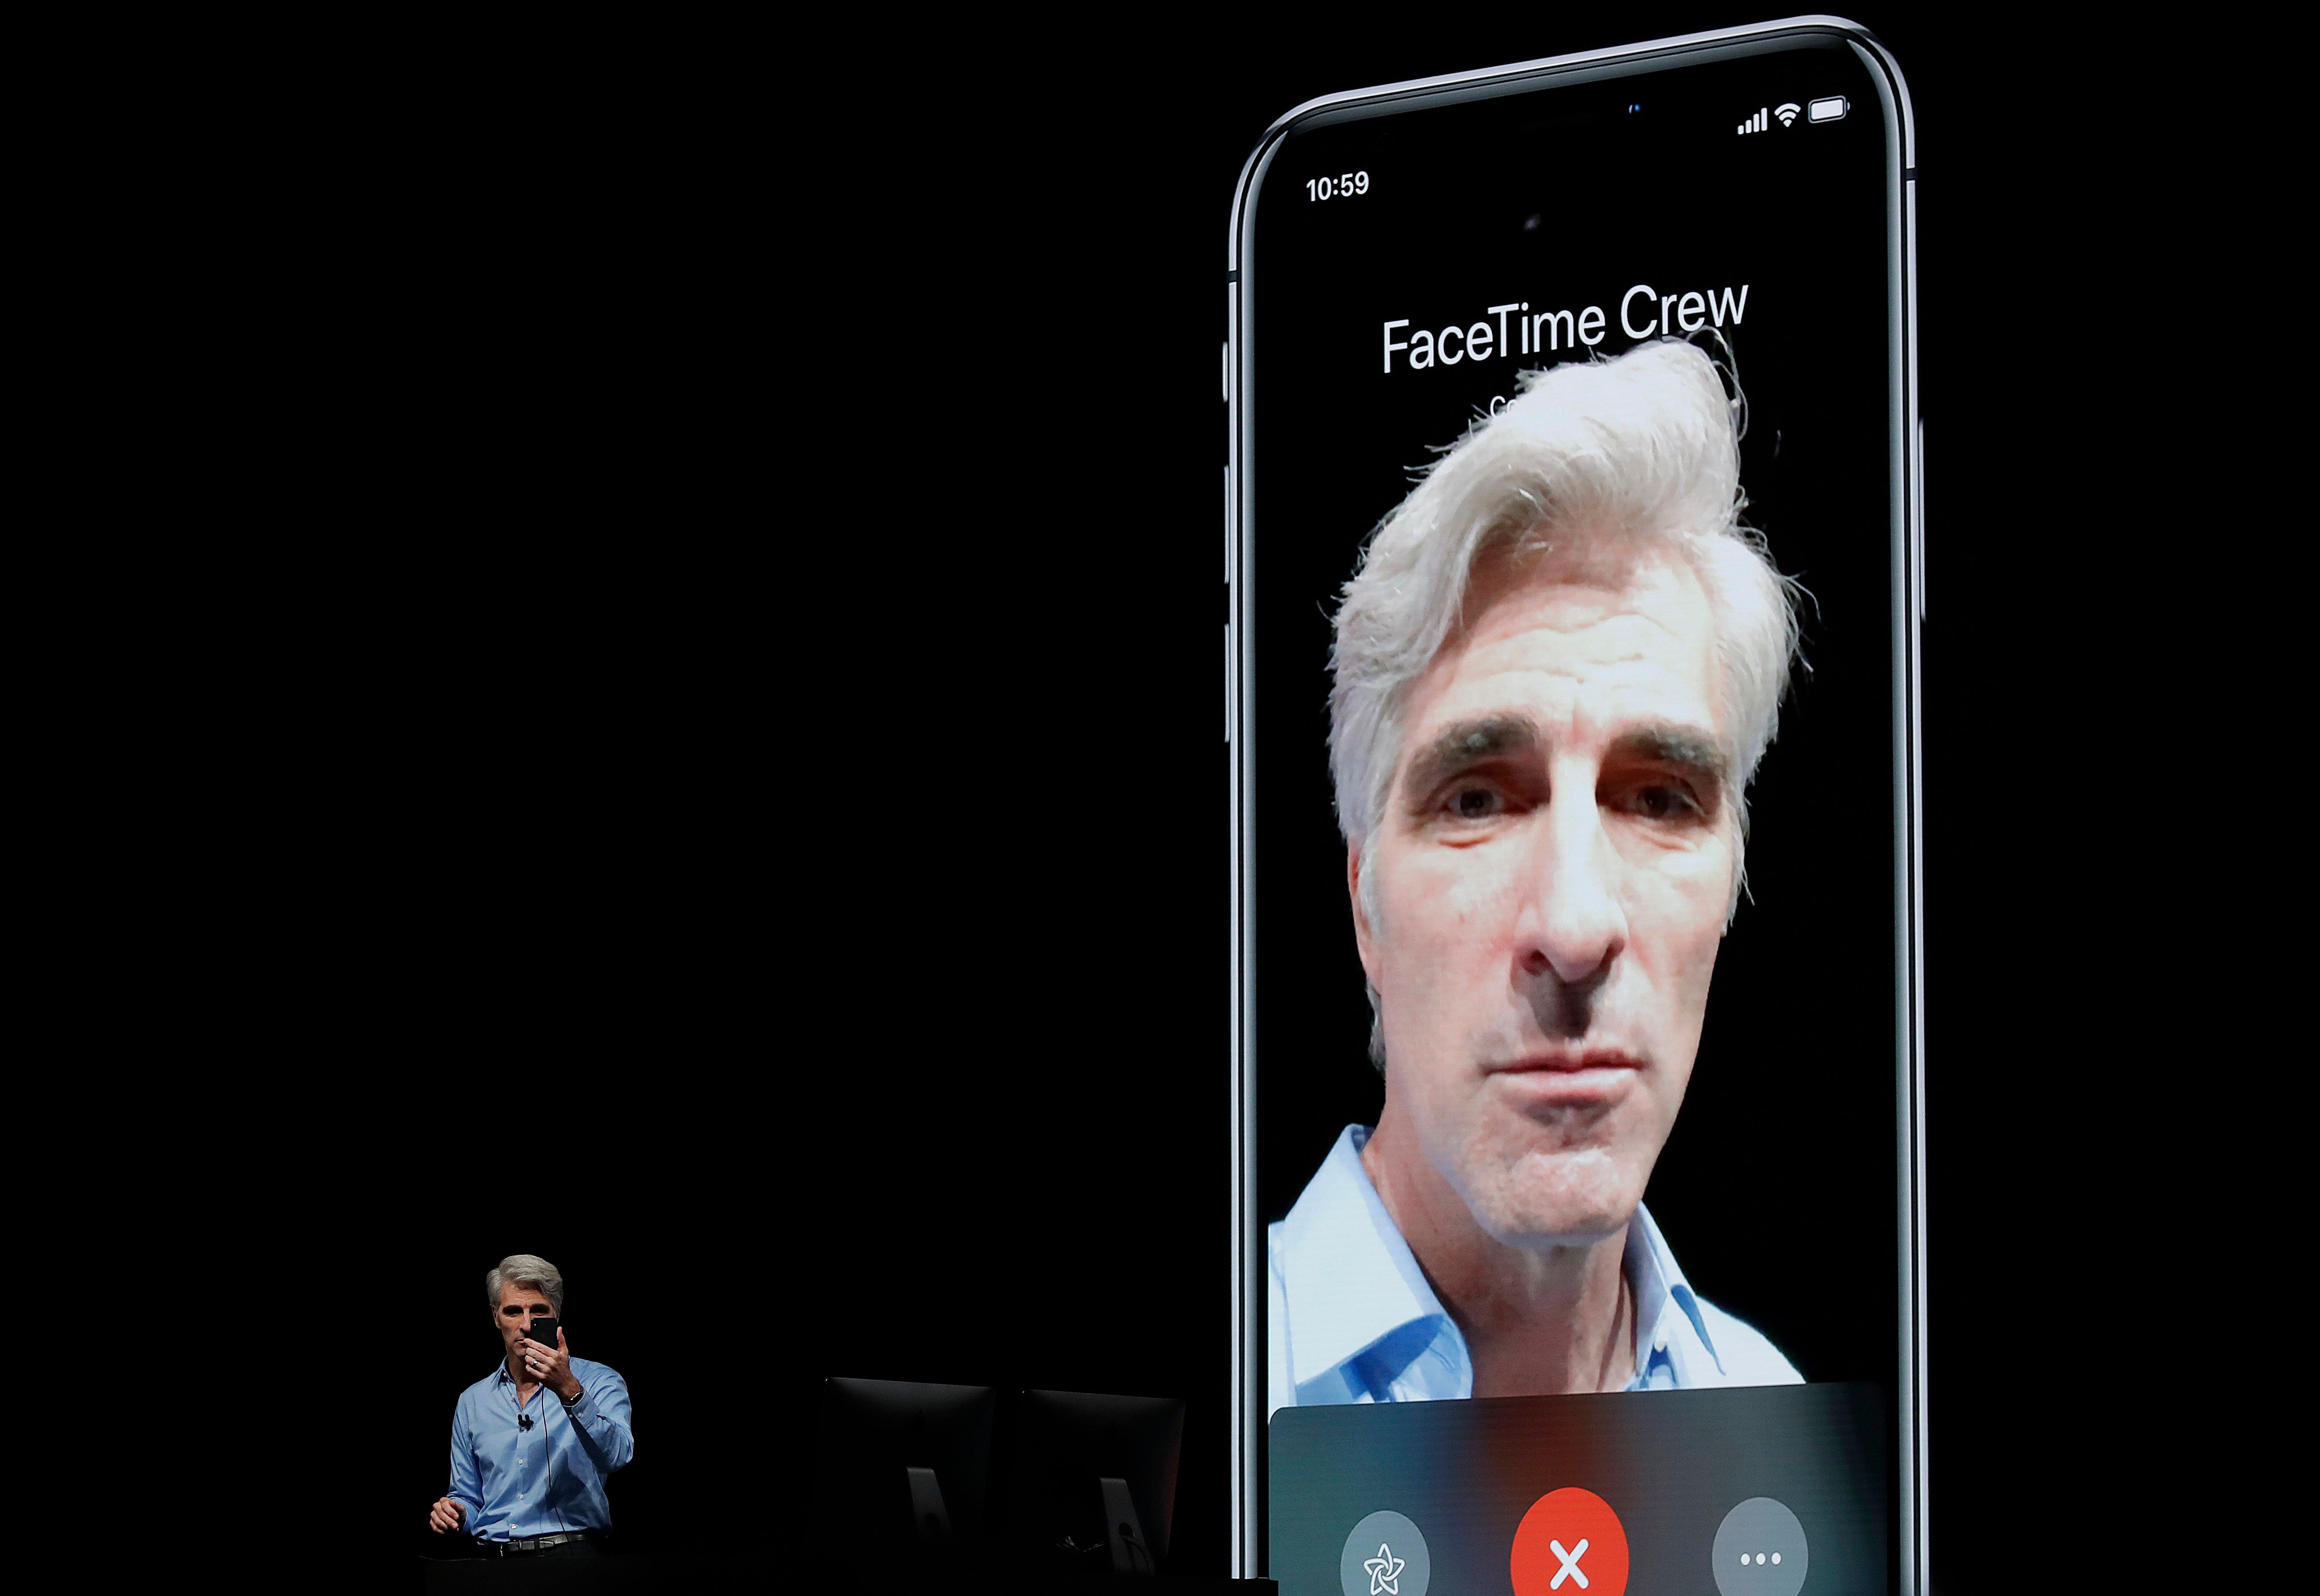 DISABLE FACETIME: Bug In Software Could Allow Others To